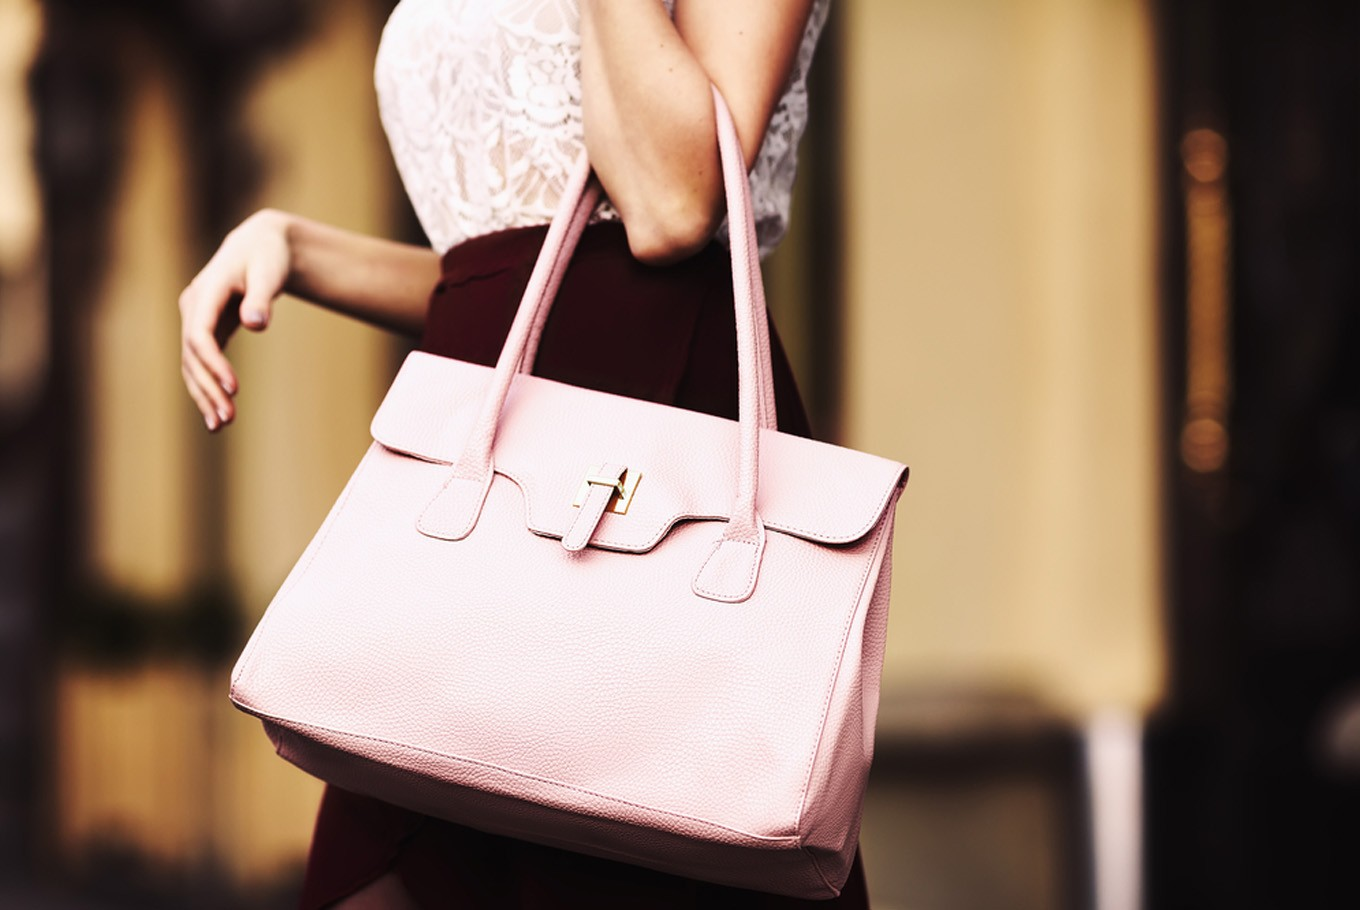 6a3b256f226f Five things to consider before investing in luxury bags. Masajeng  Rahmiasri. Masajeng Rahmiasri. The Jakarta Post